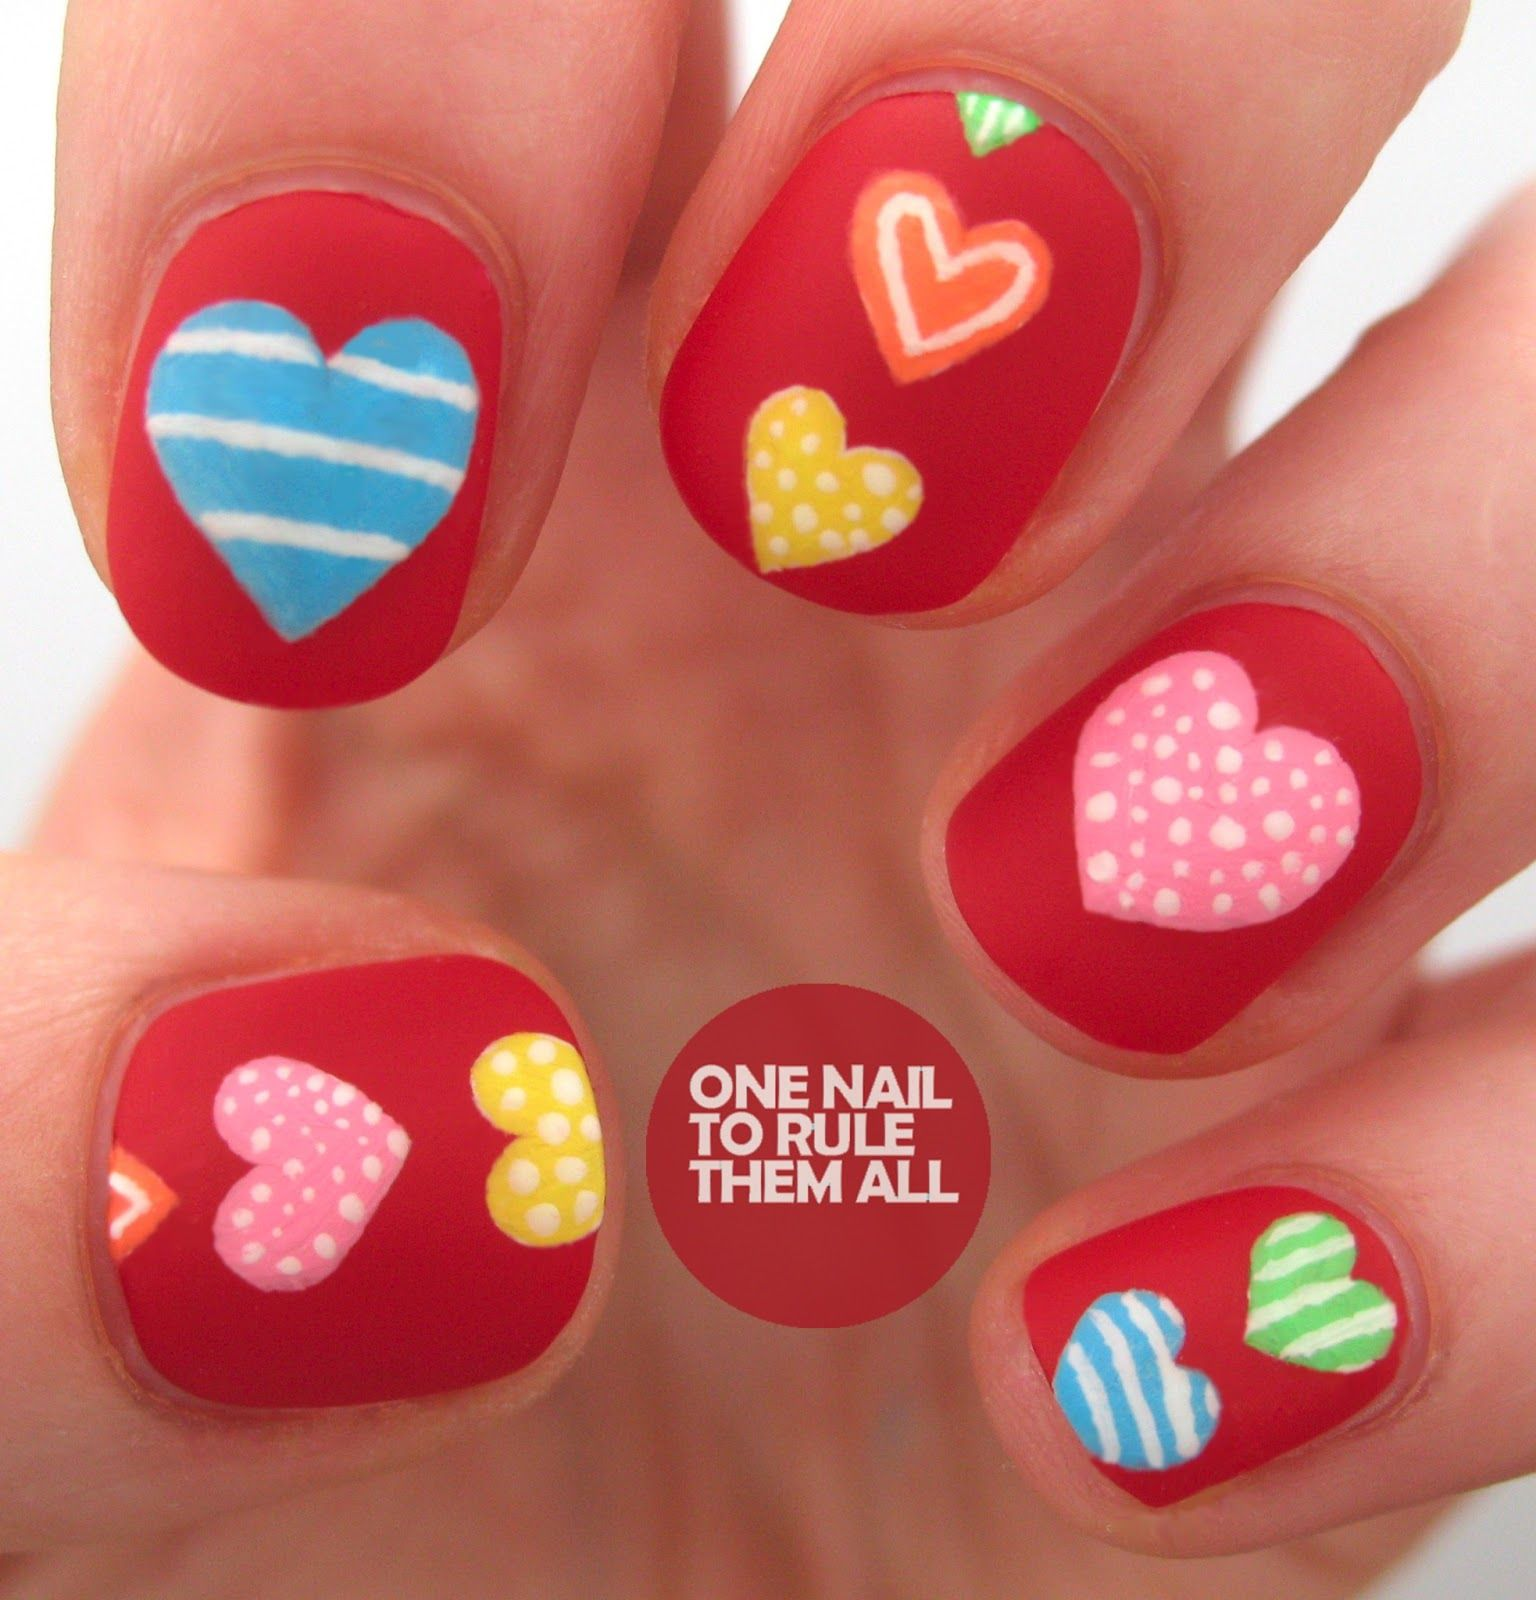 Nail art nail design one nail to rule them all valentines has nail art nail design one nail to rule them all valentines has come prinsesfo Images